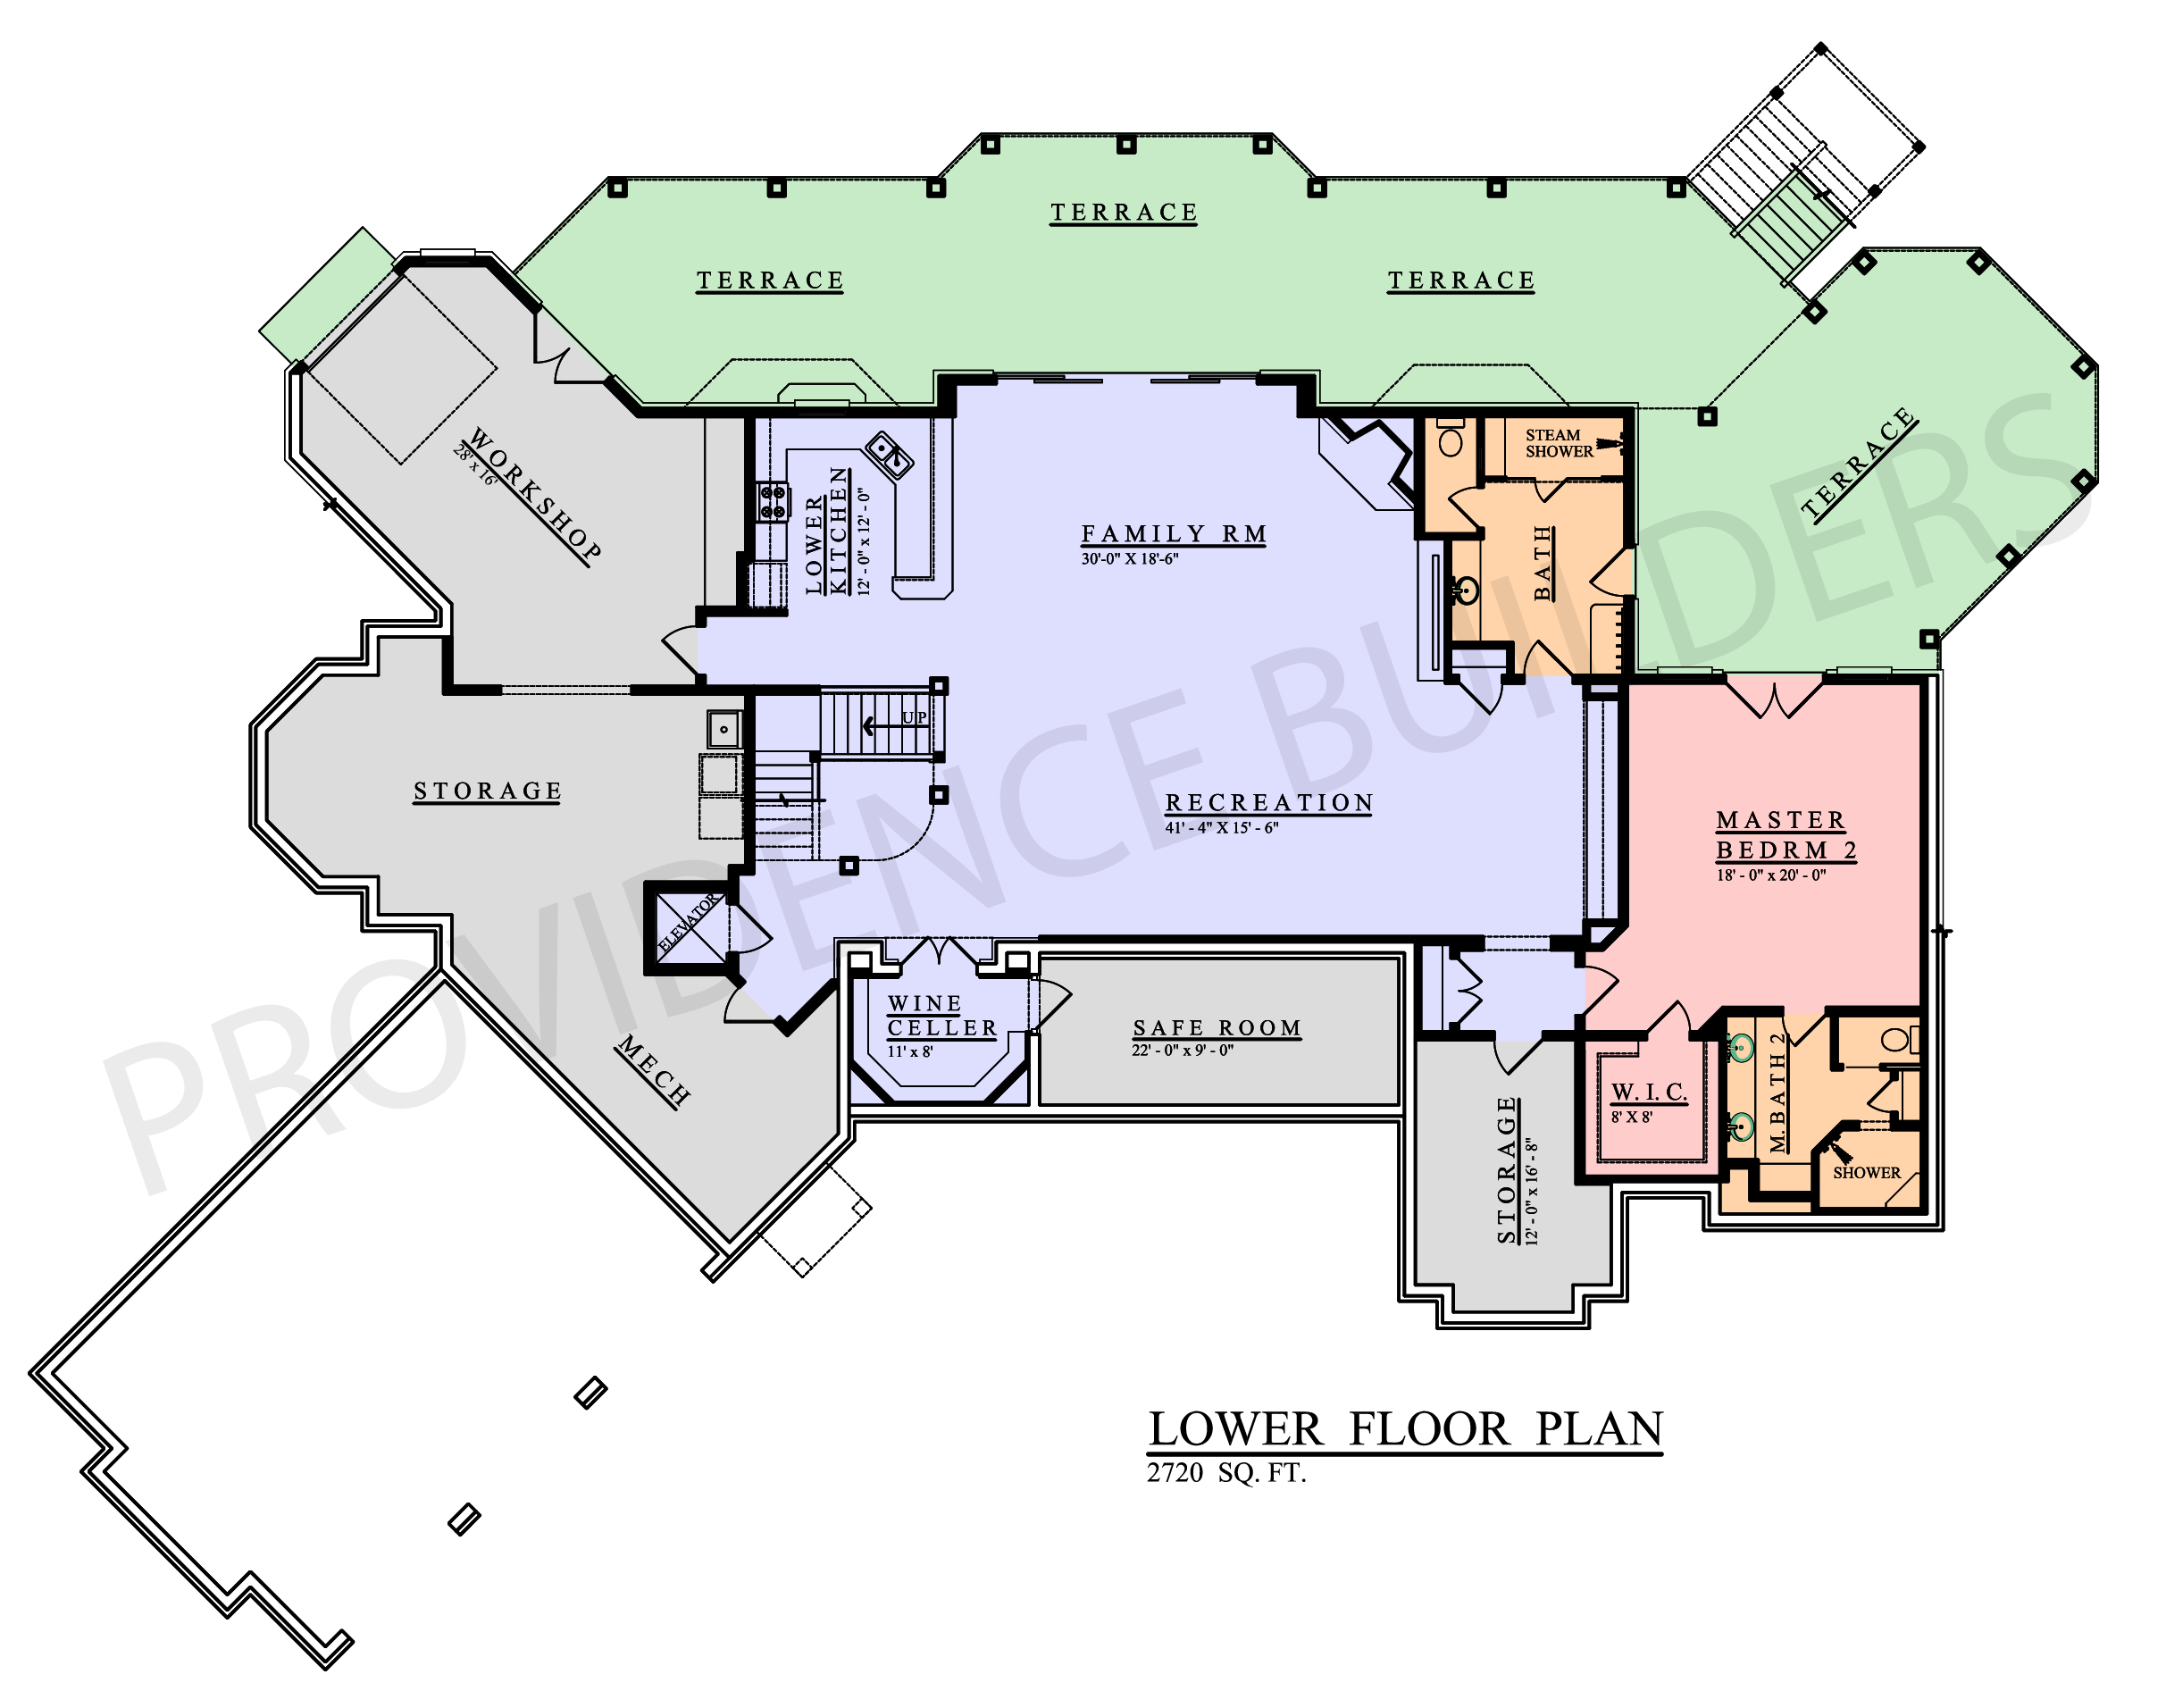 Sauvat Lower Plan